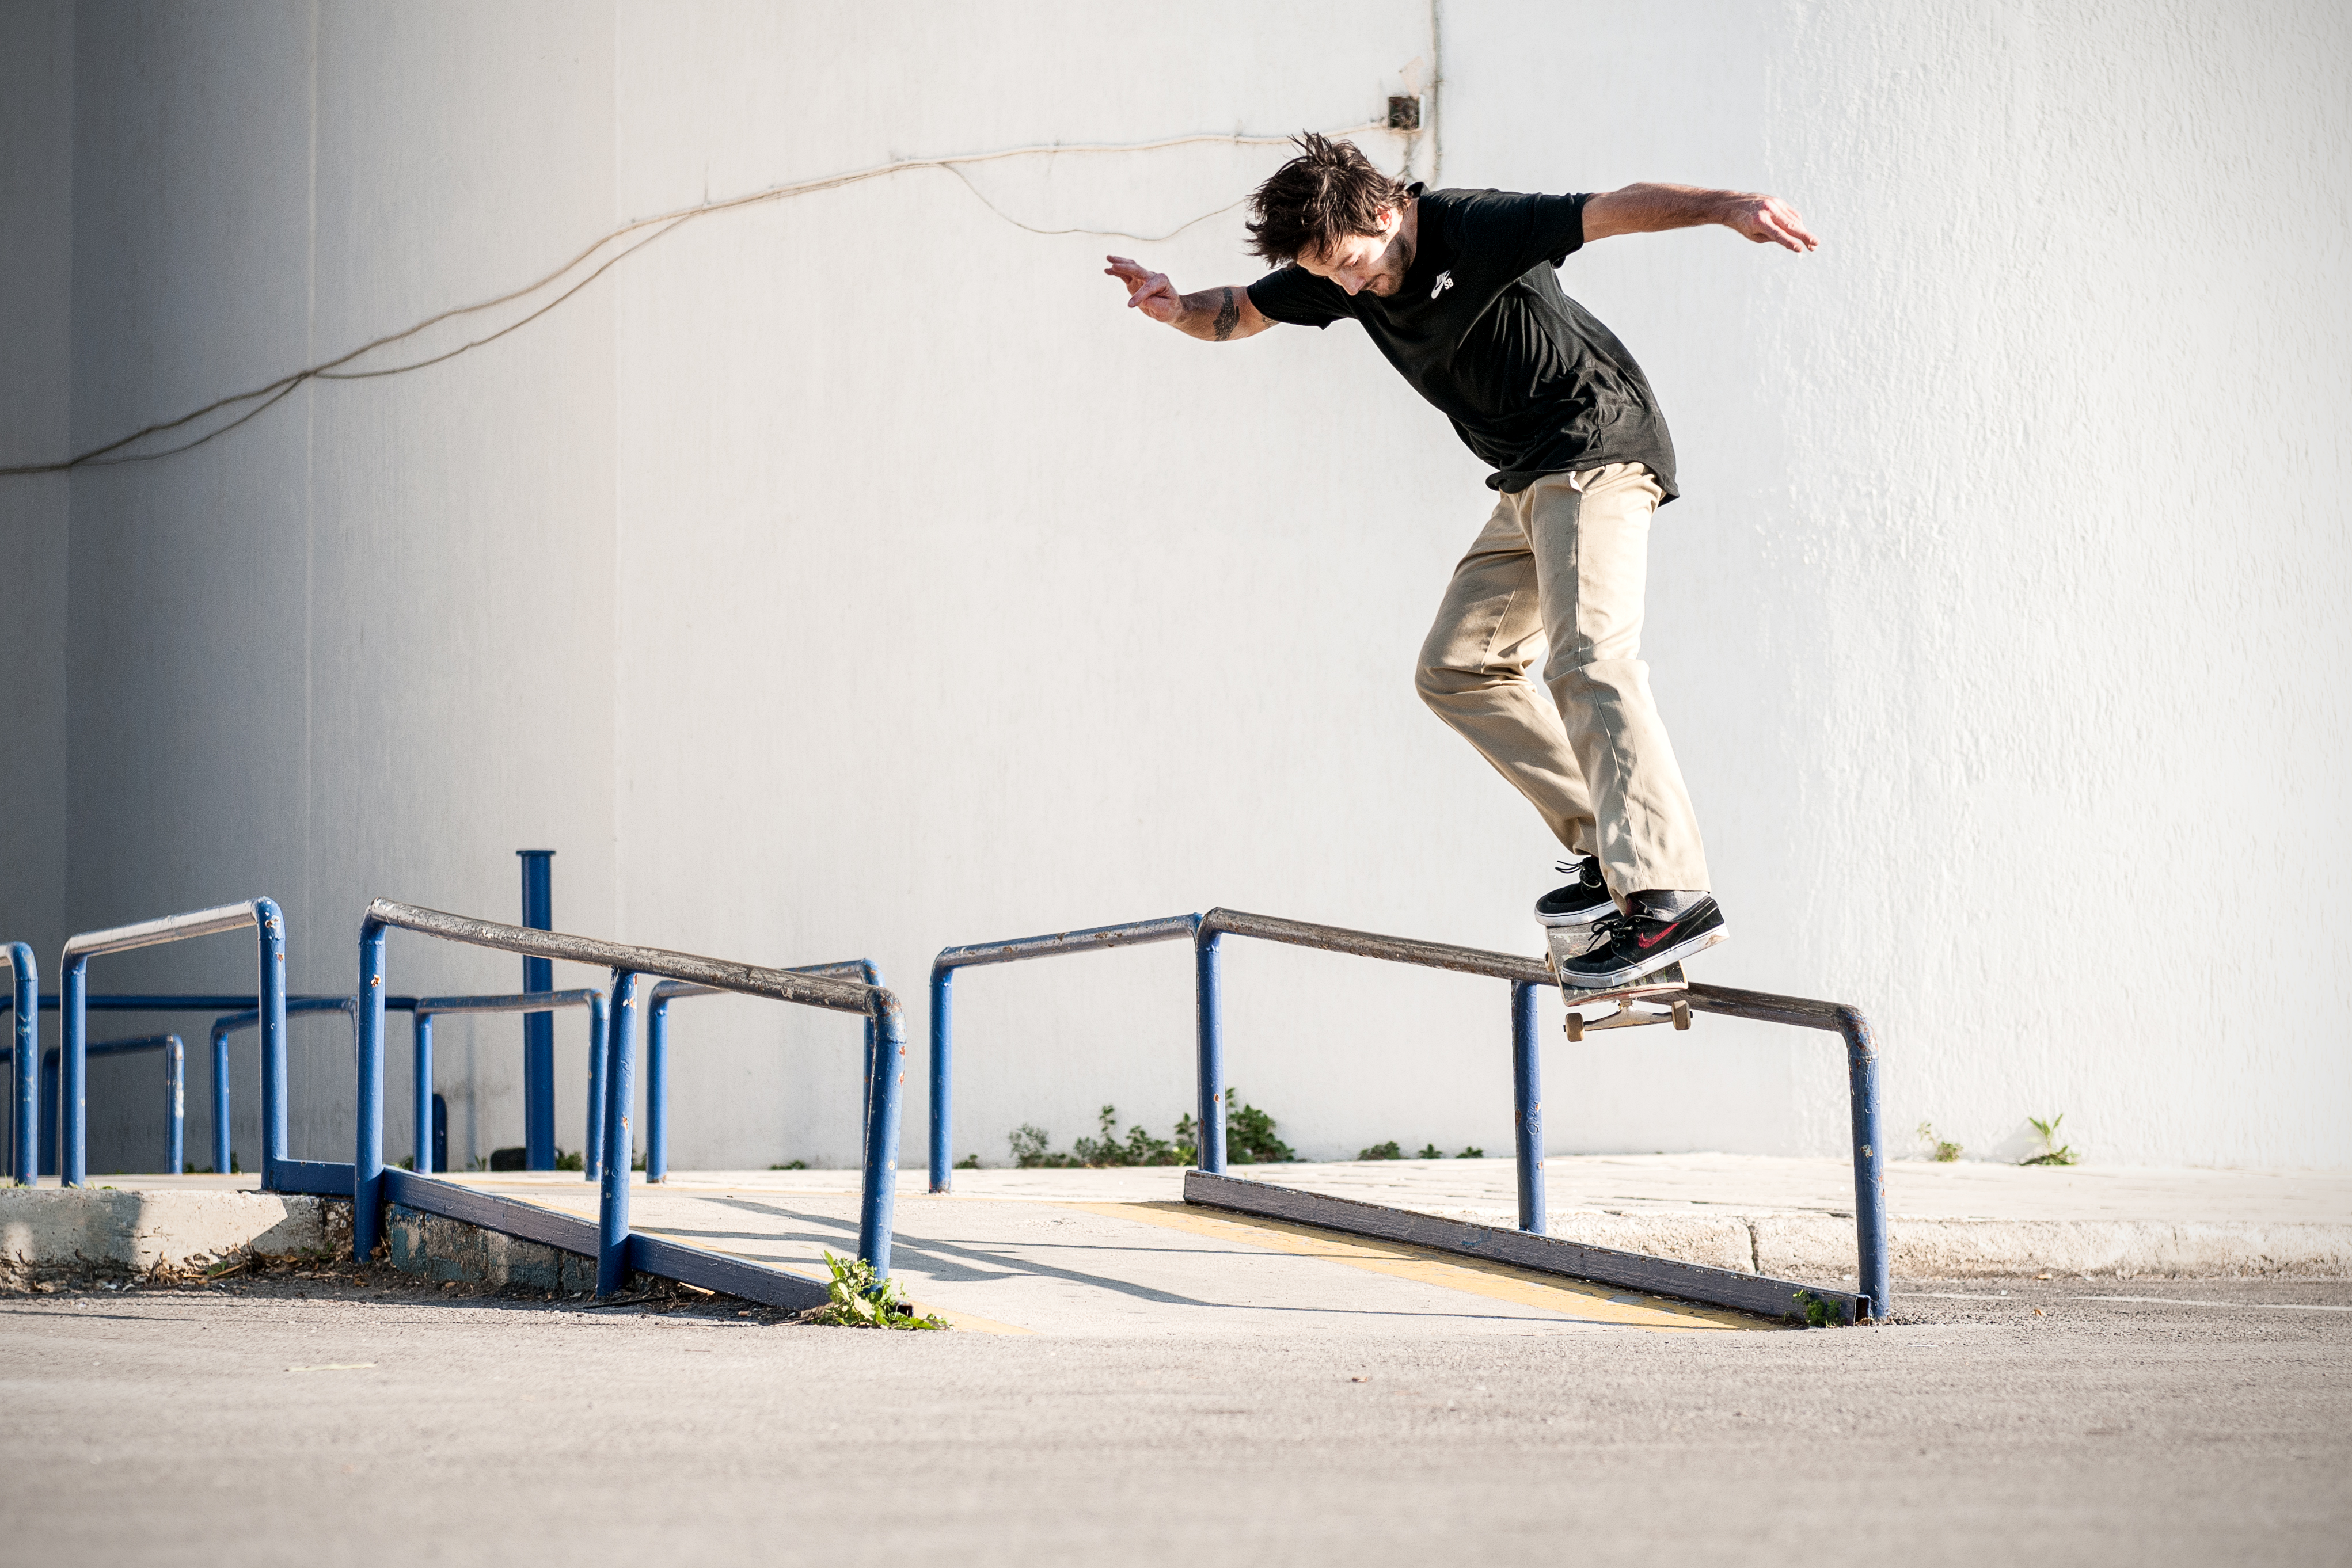 Favorite Skateboard Comany presents DAGGERS_Mario Ungerer_Sw Bs Smithgrind